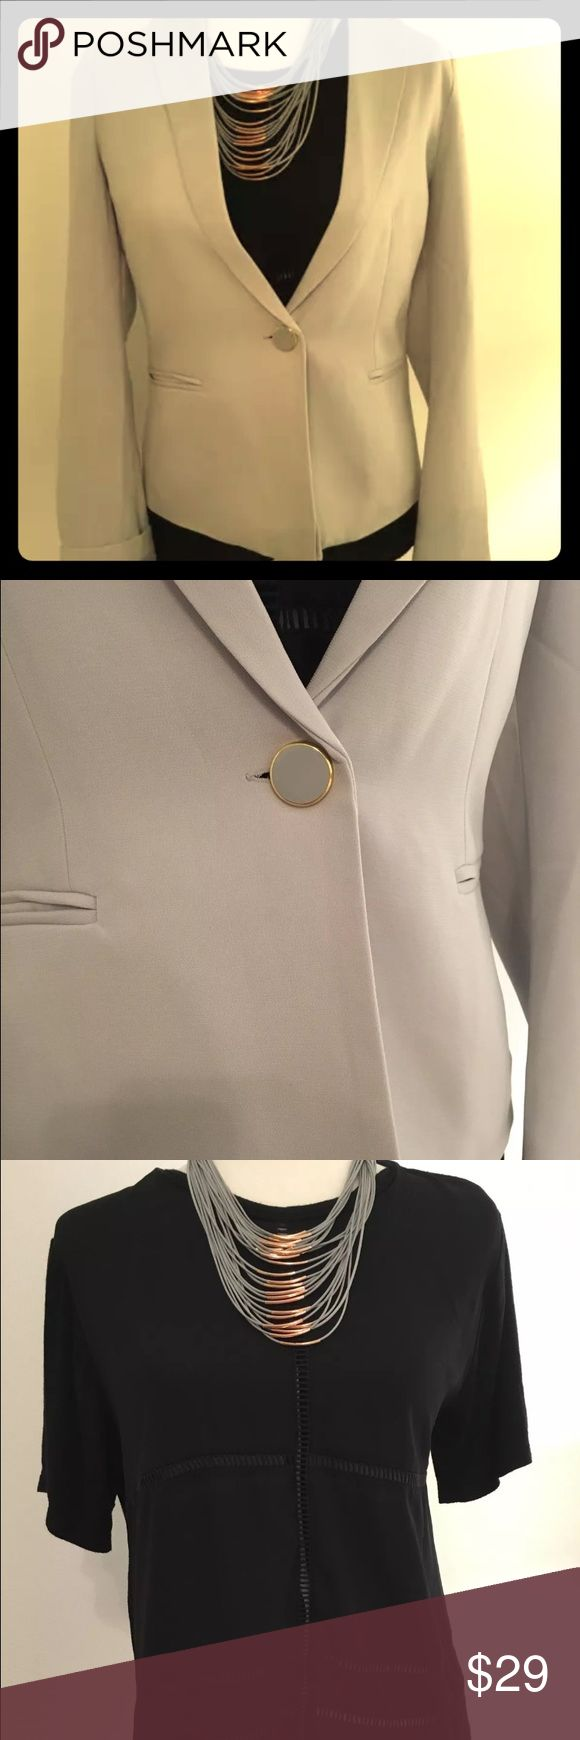 Grey Blazer+Black BCBG Shirt (S) and Necklace lot Grey Just Fab Blazer NWOT Size S, gold and grey button accent!  Paired with black BCBG shirt Size S. And adorable rose gold and blue statement necklace. Pair with your black pants and go to that meeting! Maintained in a smoke free home. BCBGeneration Jackets & Coats Blazers